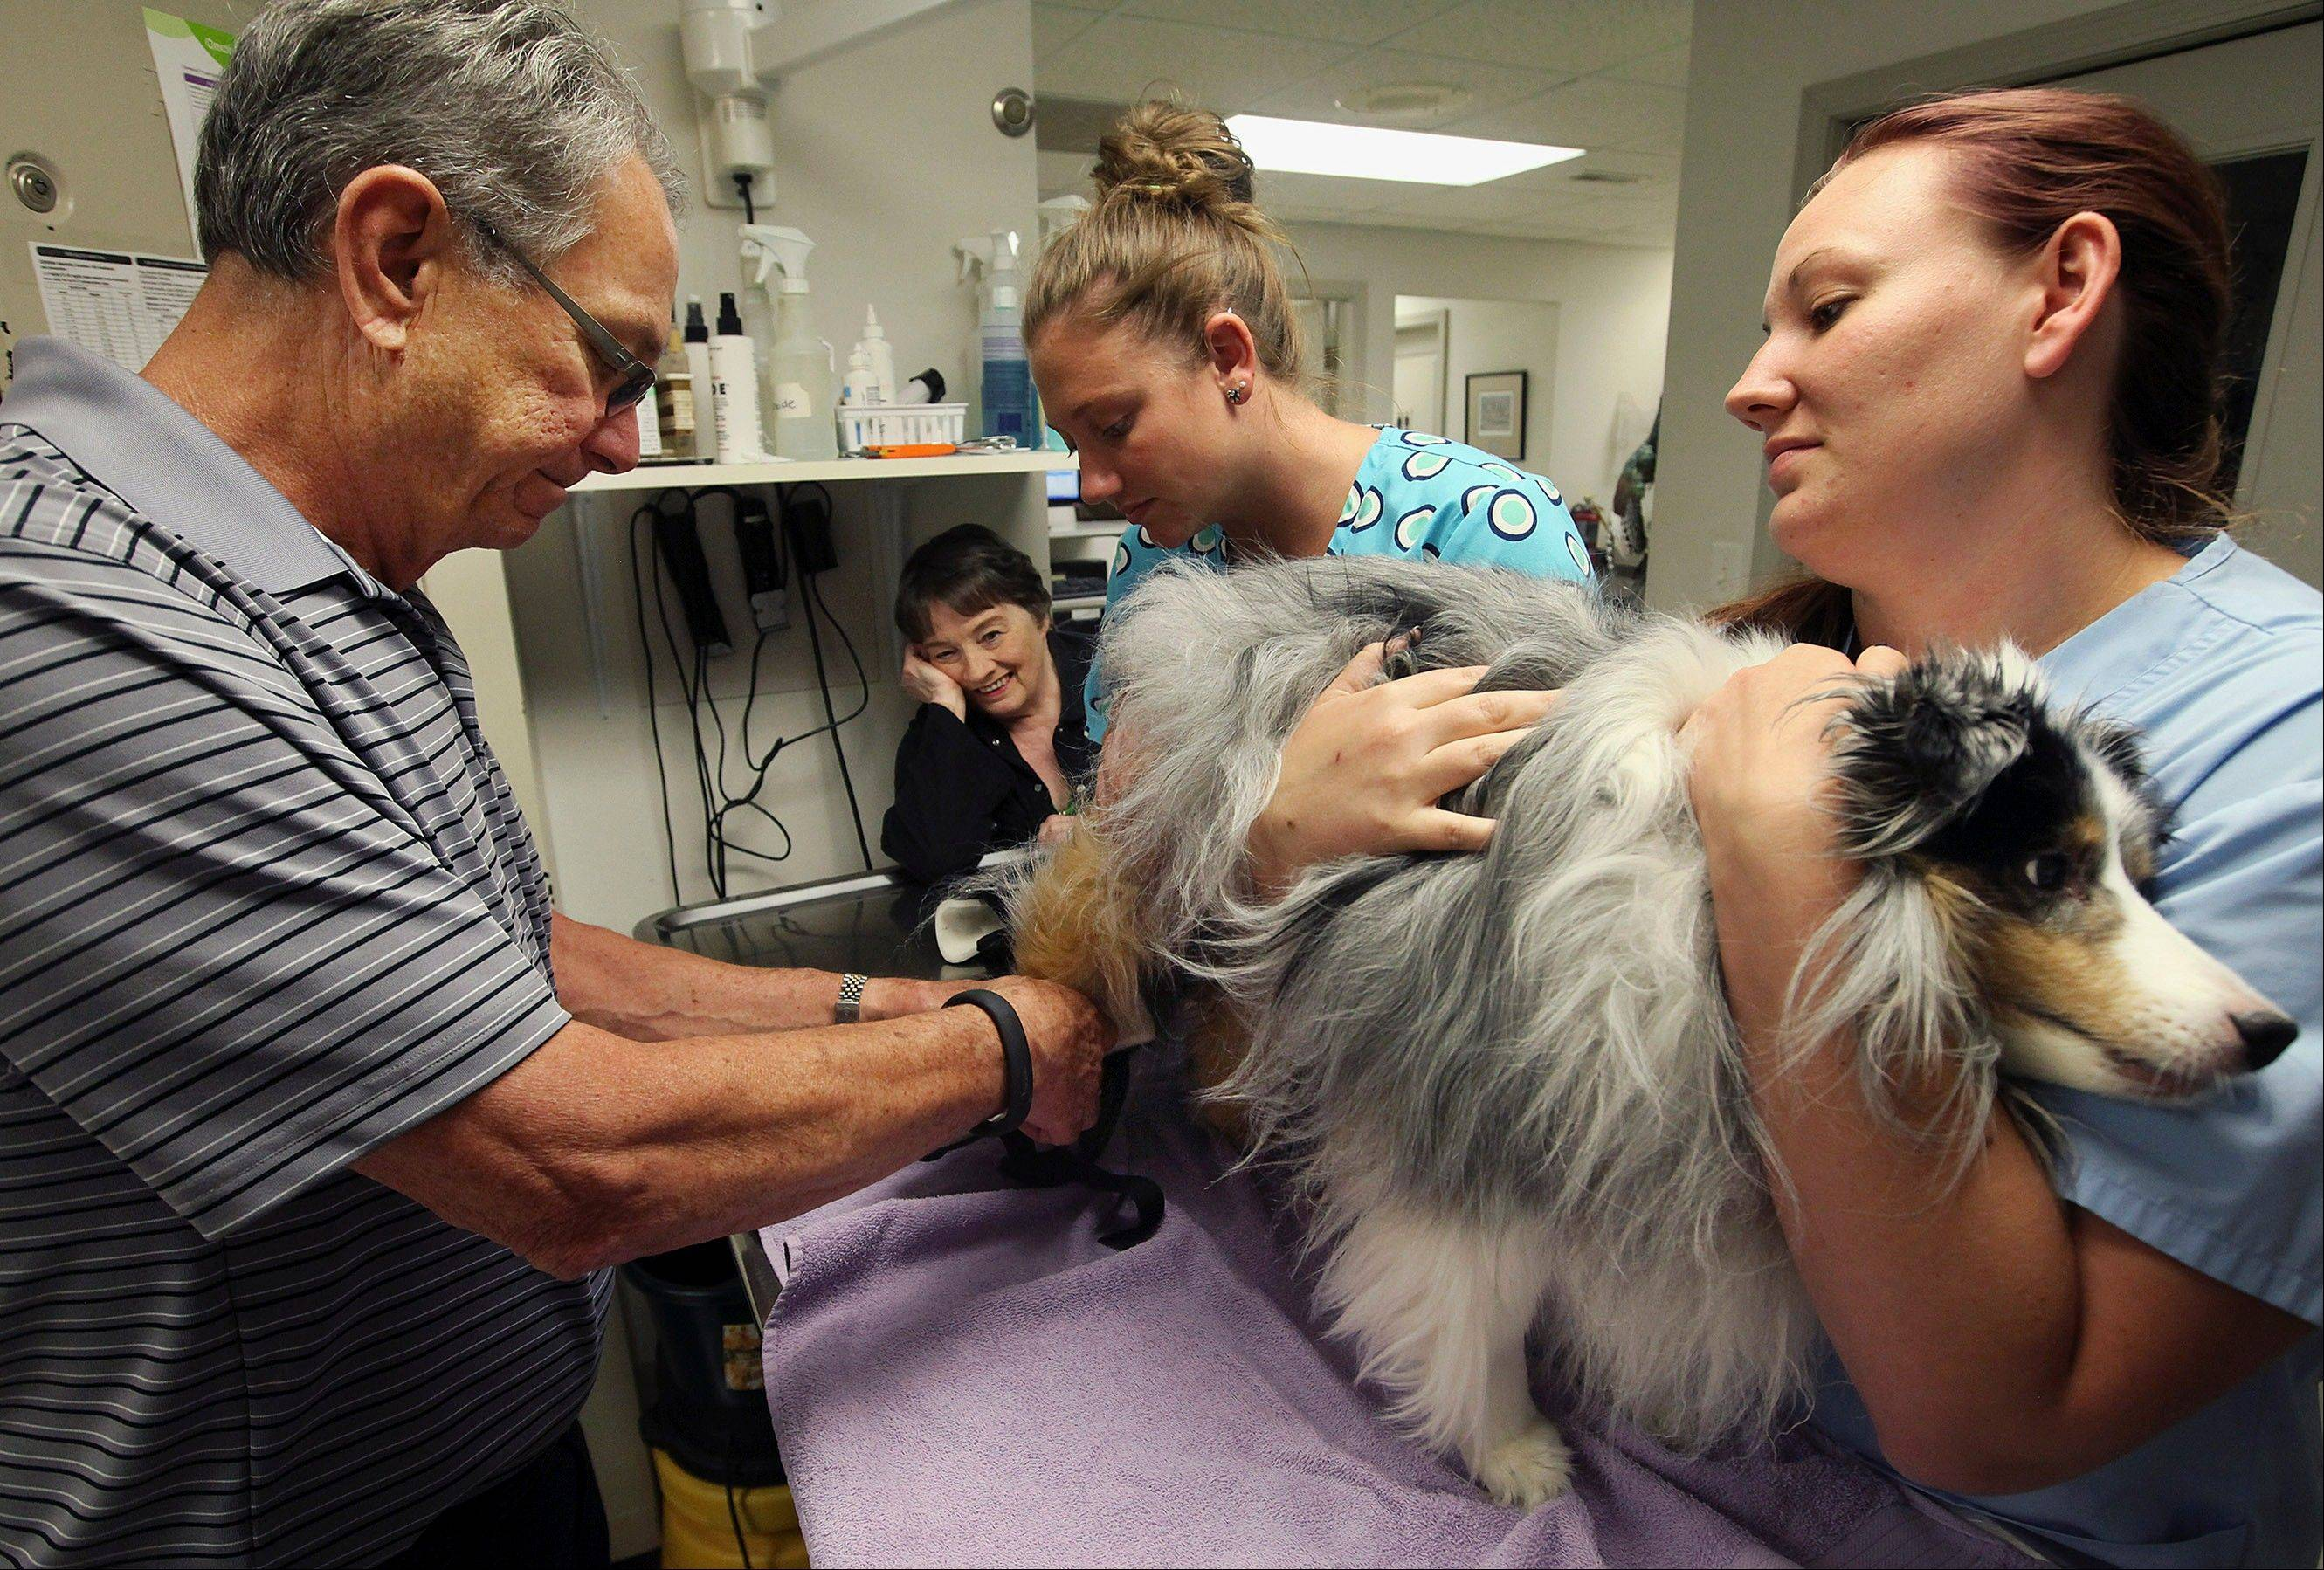 Quincy Herald-Whig Veterinarian Dr. Bob Reich places orthopedic braces on the hind legs of Quincy, an 8-year-old blue merle sheltie, with help from technicians Carilie Wear and Whitney Jansen at the Animal Medical Clinic in Quincy.